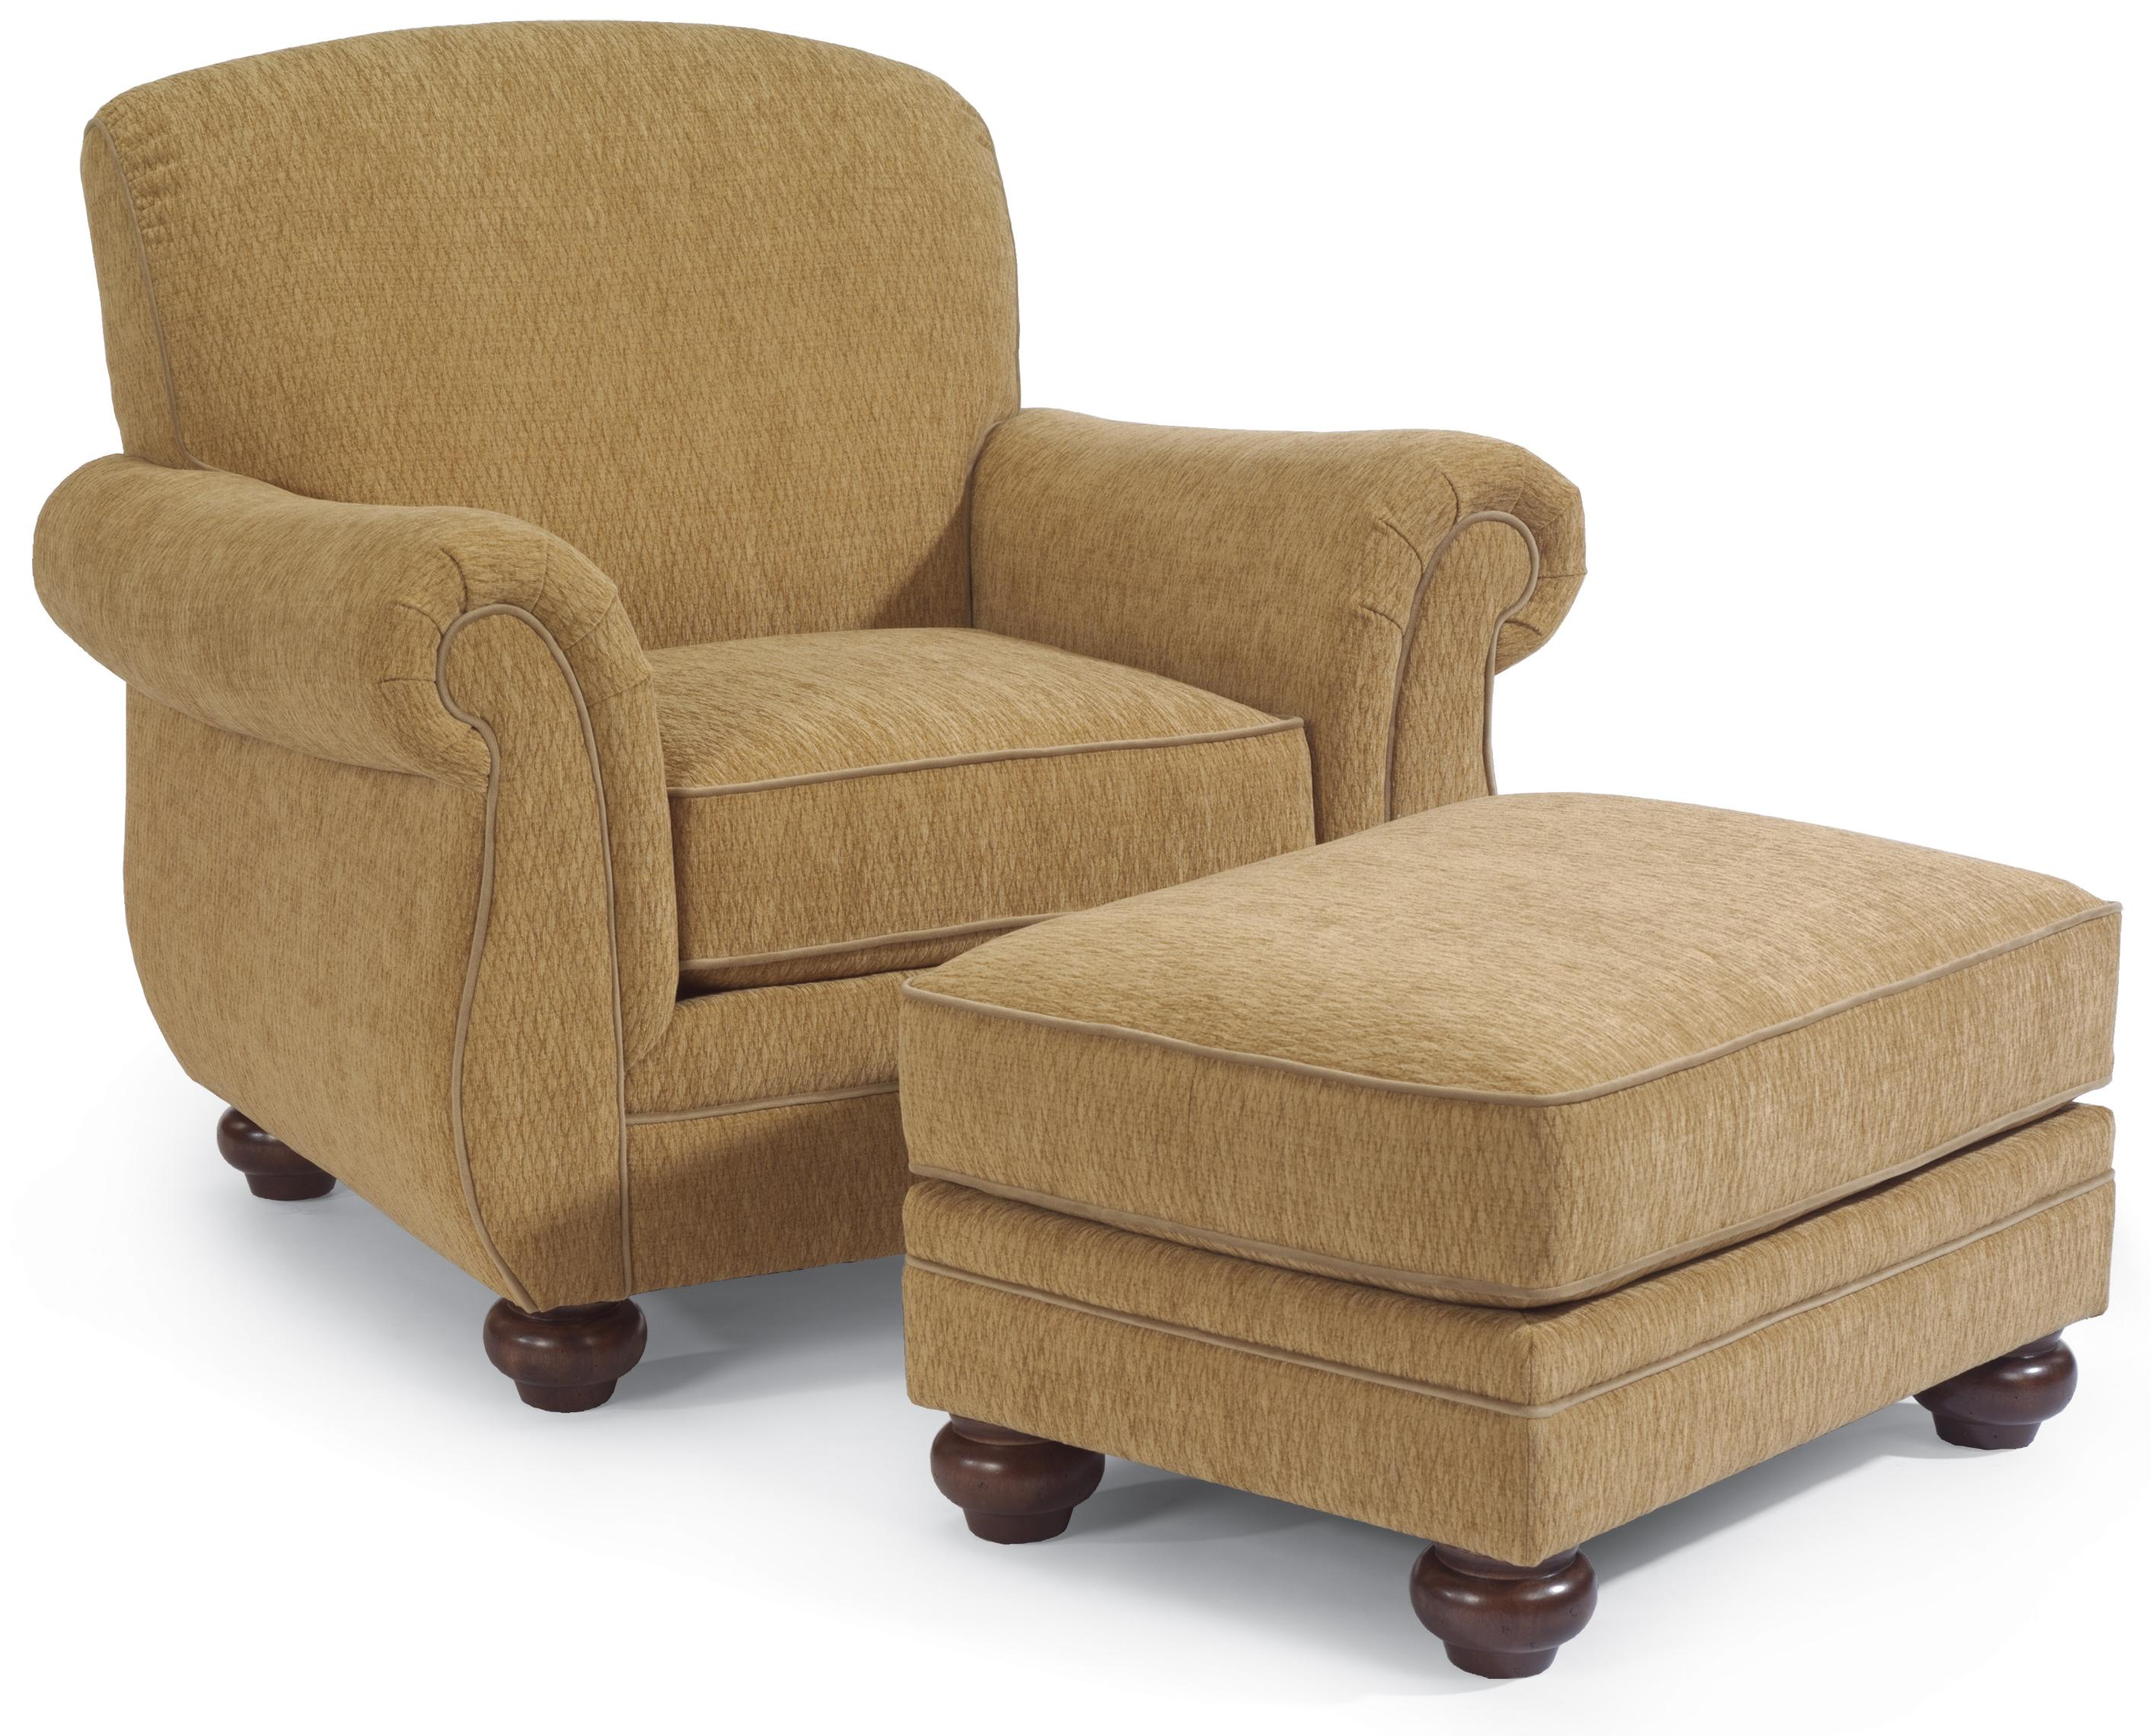 Flexsteel Winston Chair and Ottoman Set - Item Number: 5997-10+08